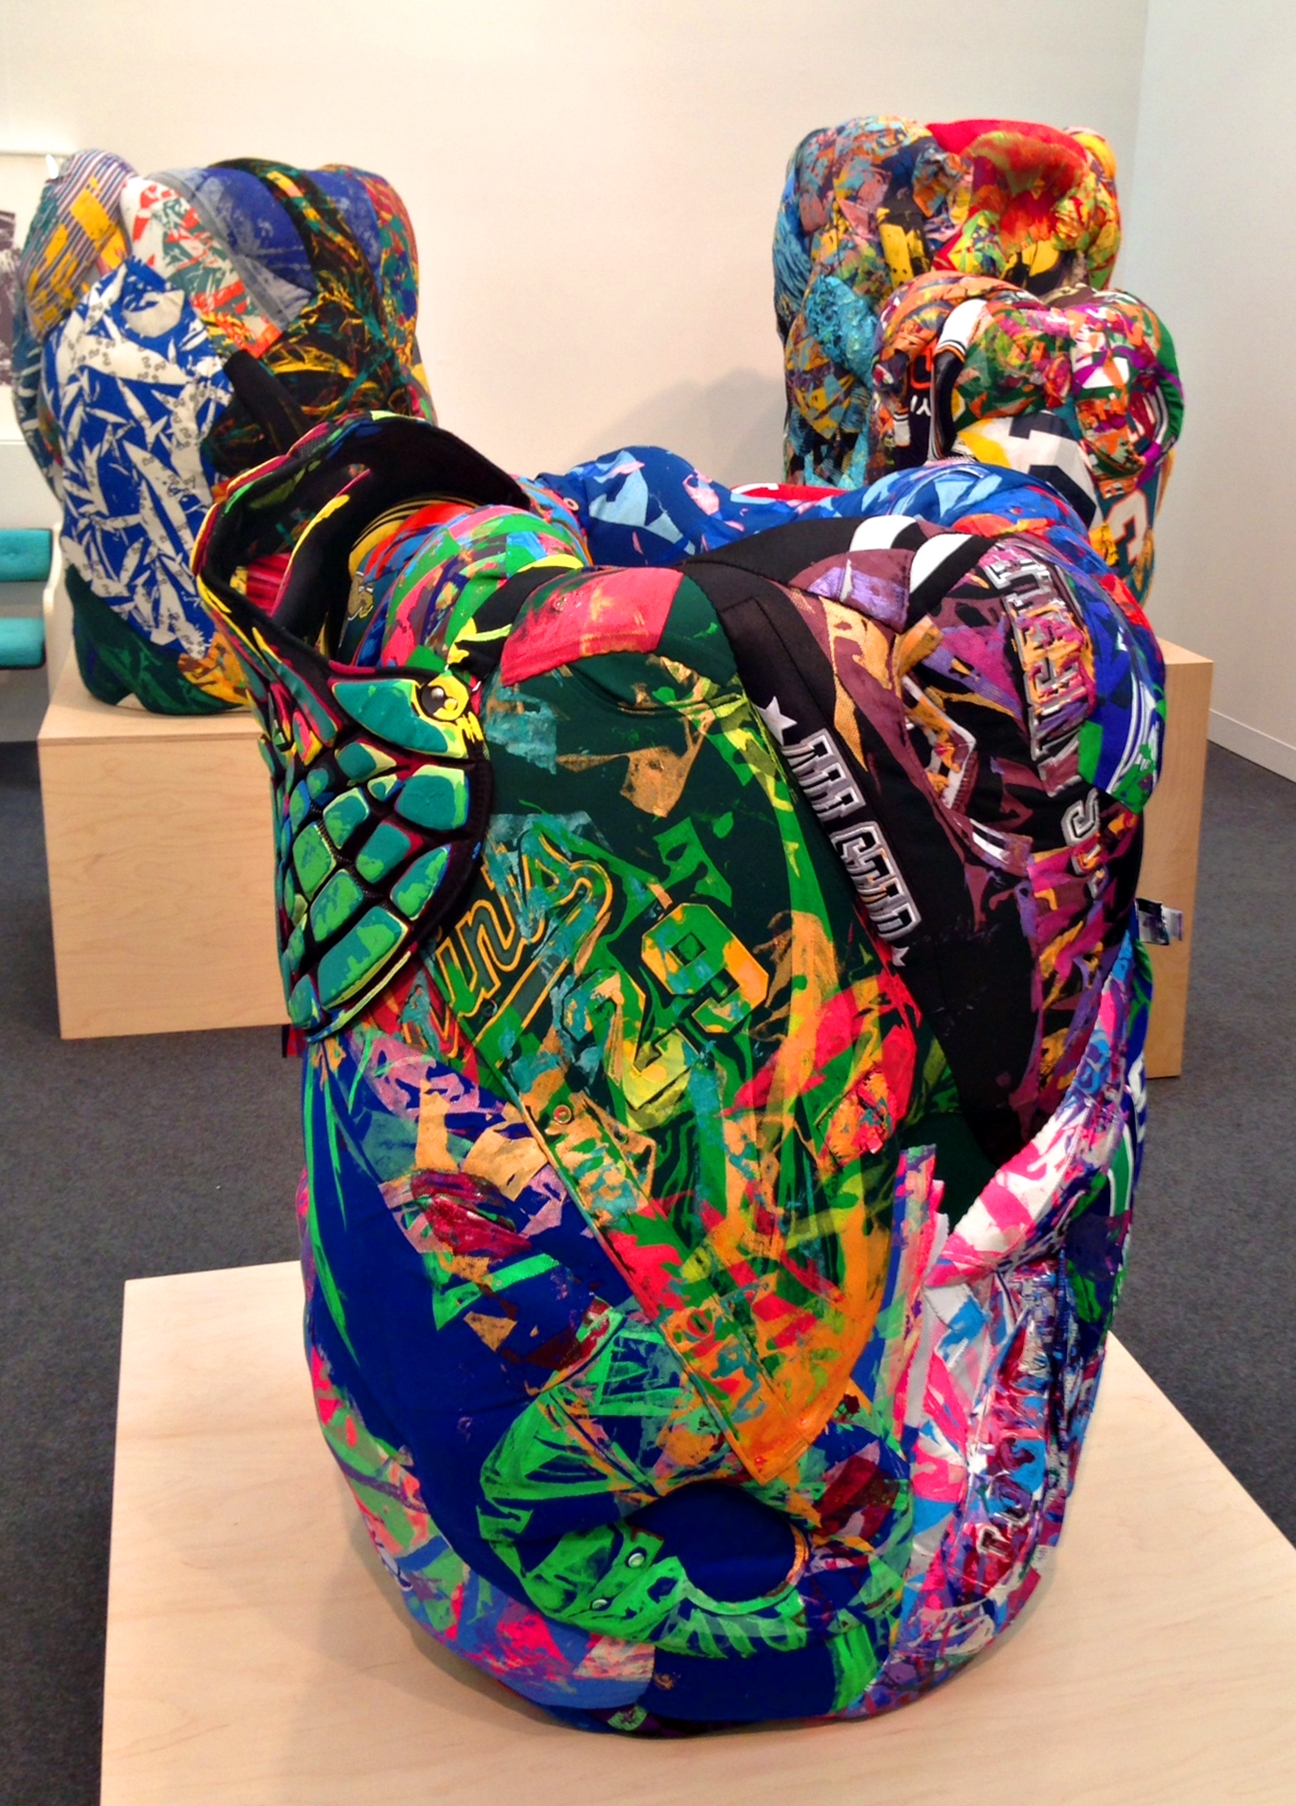 These were my favorite sculptures, each of them made of clothing pieces by LA-based artist Aiko Hachisuka.